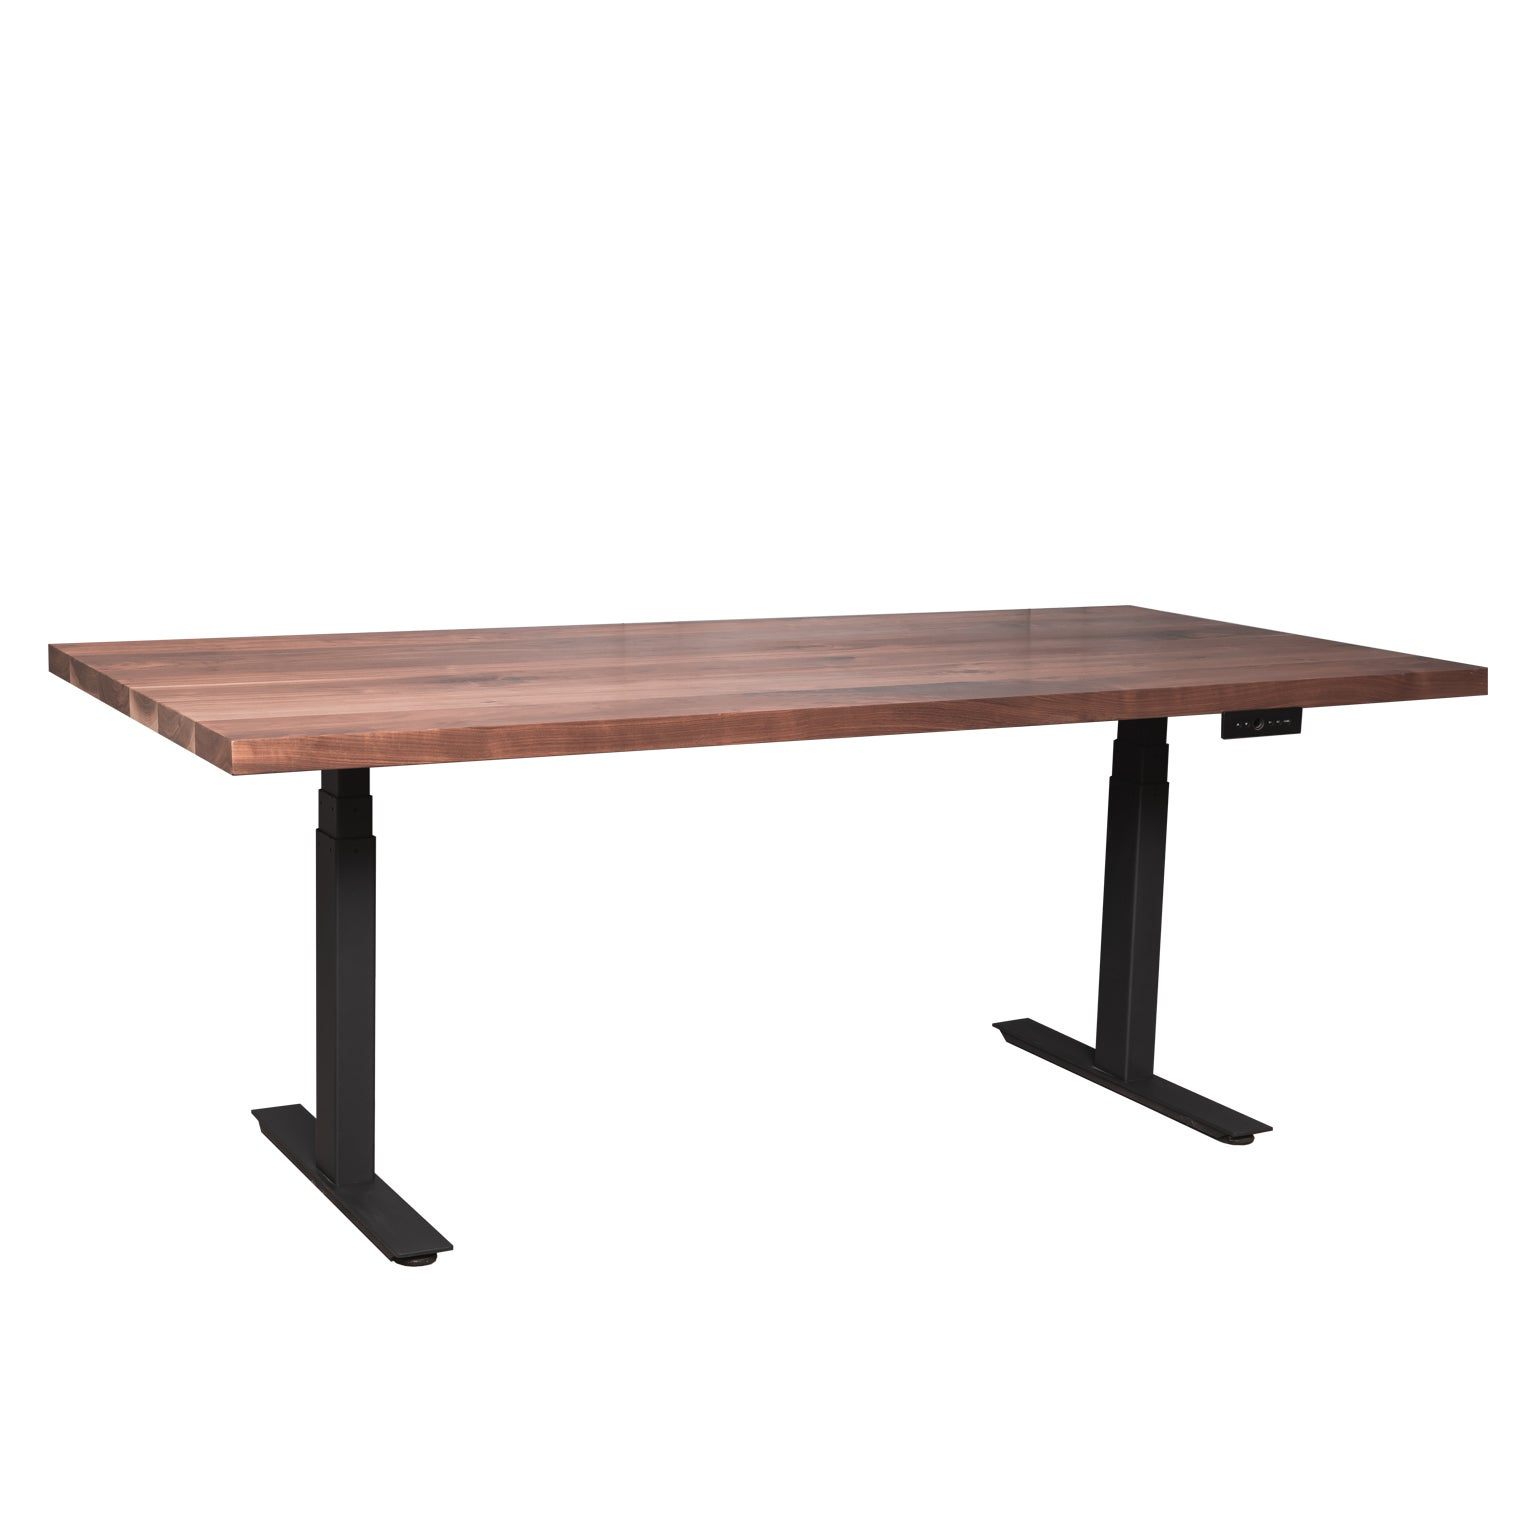 """Custom Sit/Stand """"Essentials Desk"""" with Solid Wood Top and Metal Base, Small"""